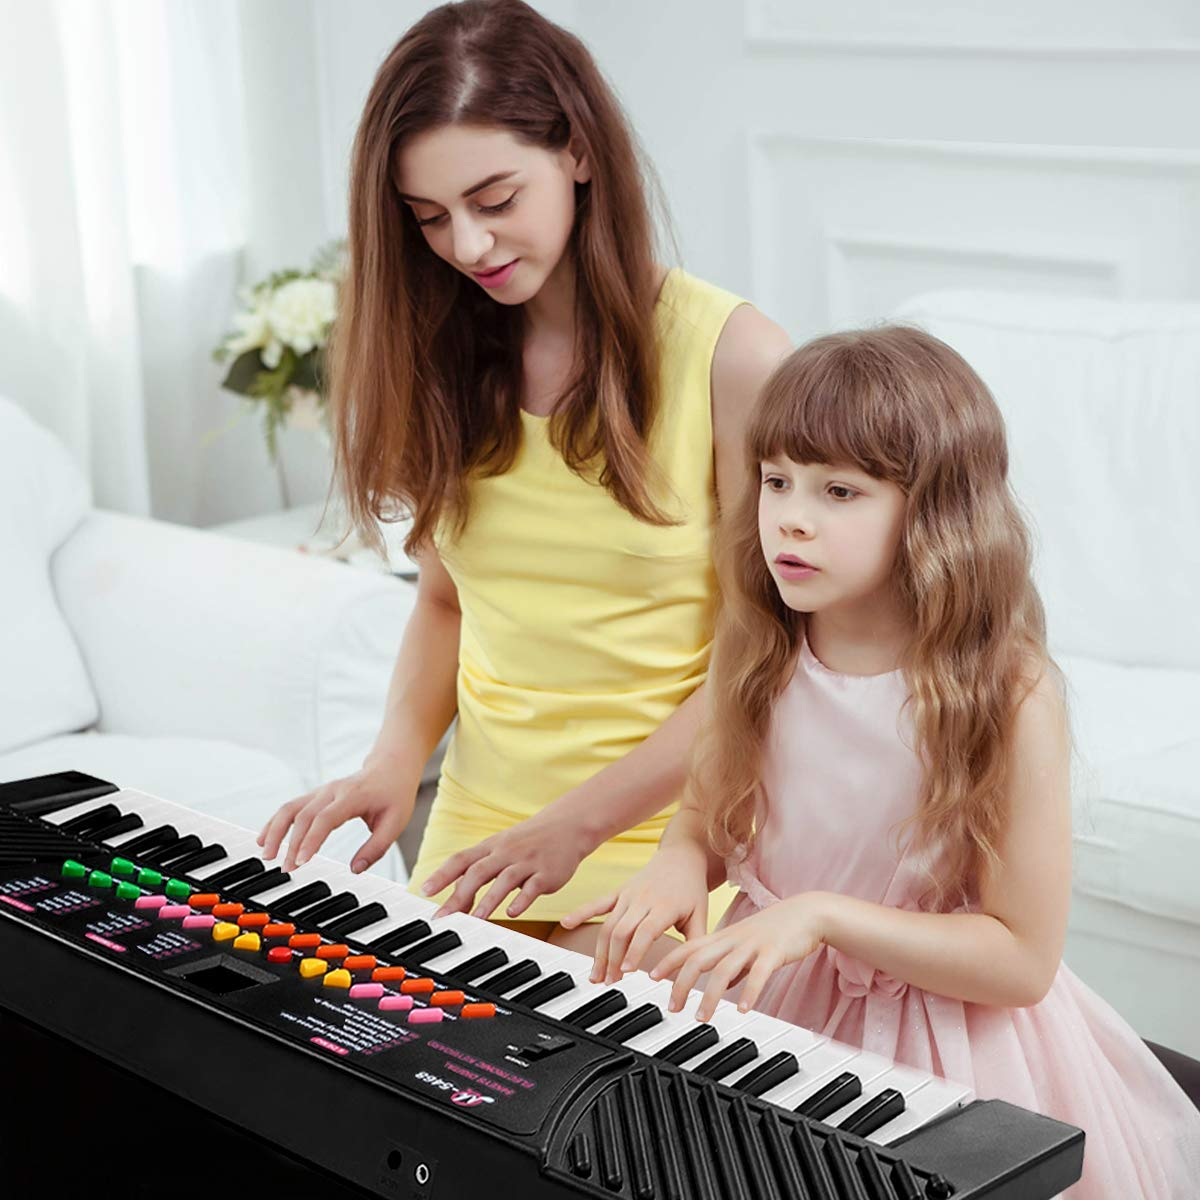 Tangkula 54-Key Electronic Keyboard for Kids Beginners with Mic & Adapter Including LED Digital Display, Learning Function & Demo Songs Standard Accordion Keys Piano Keyboard (Black) by TANGKULA (Image #2)